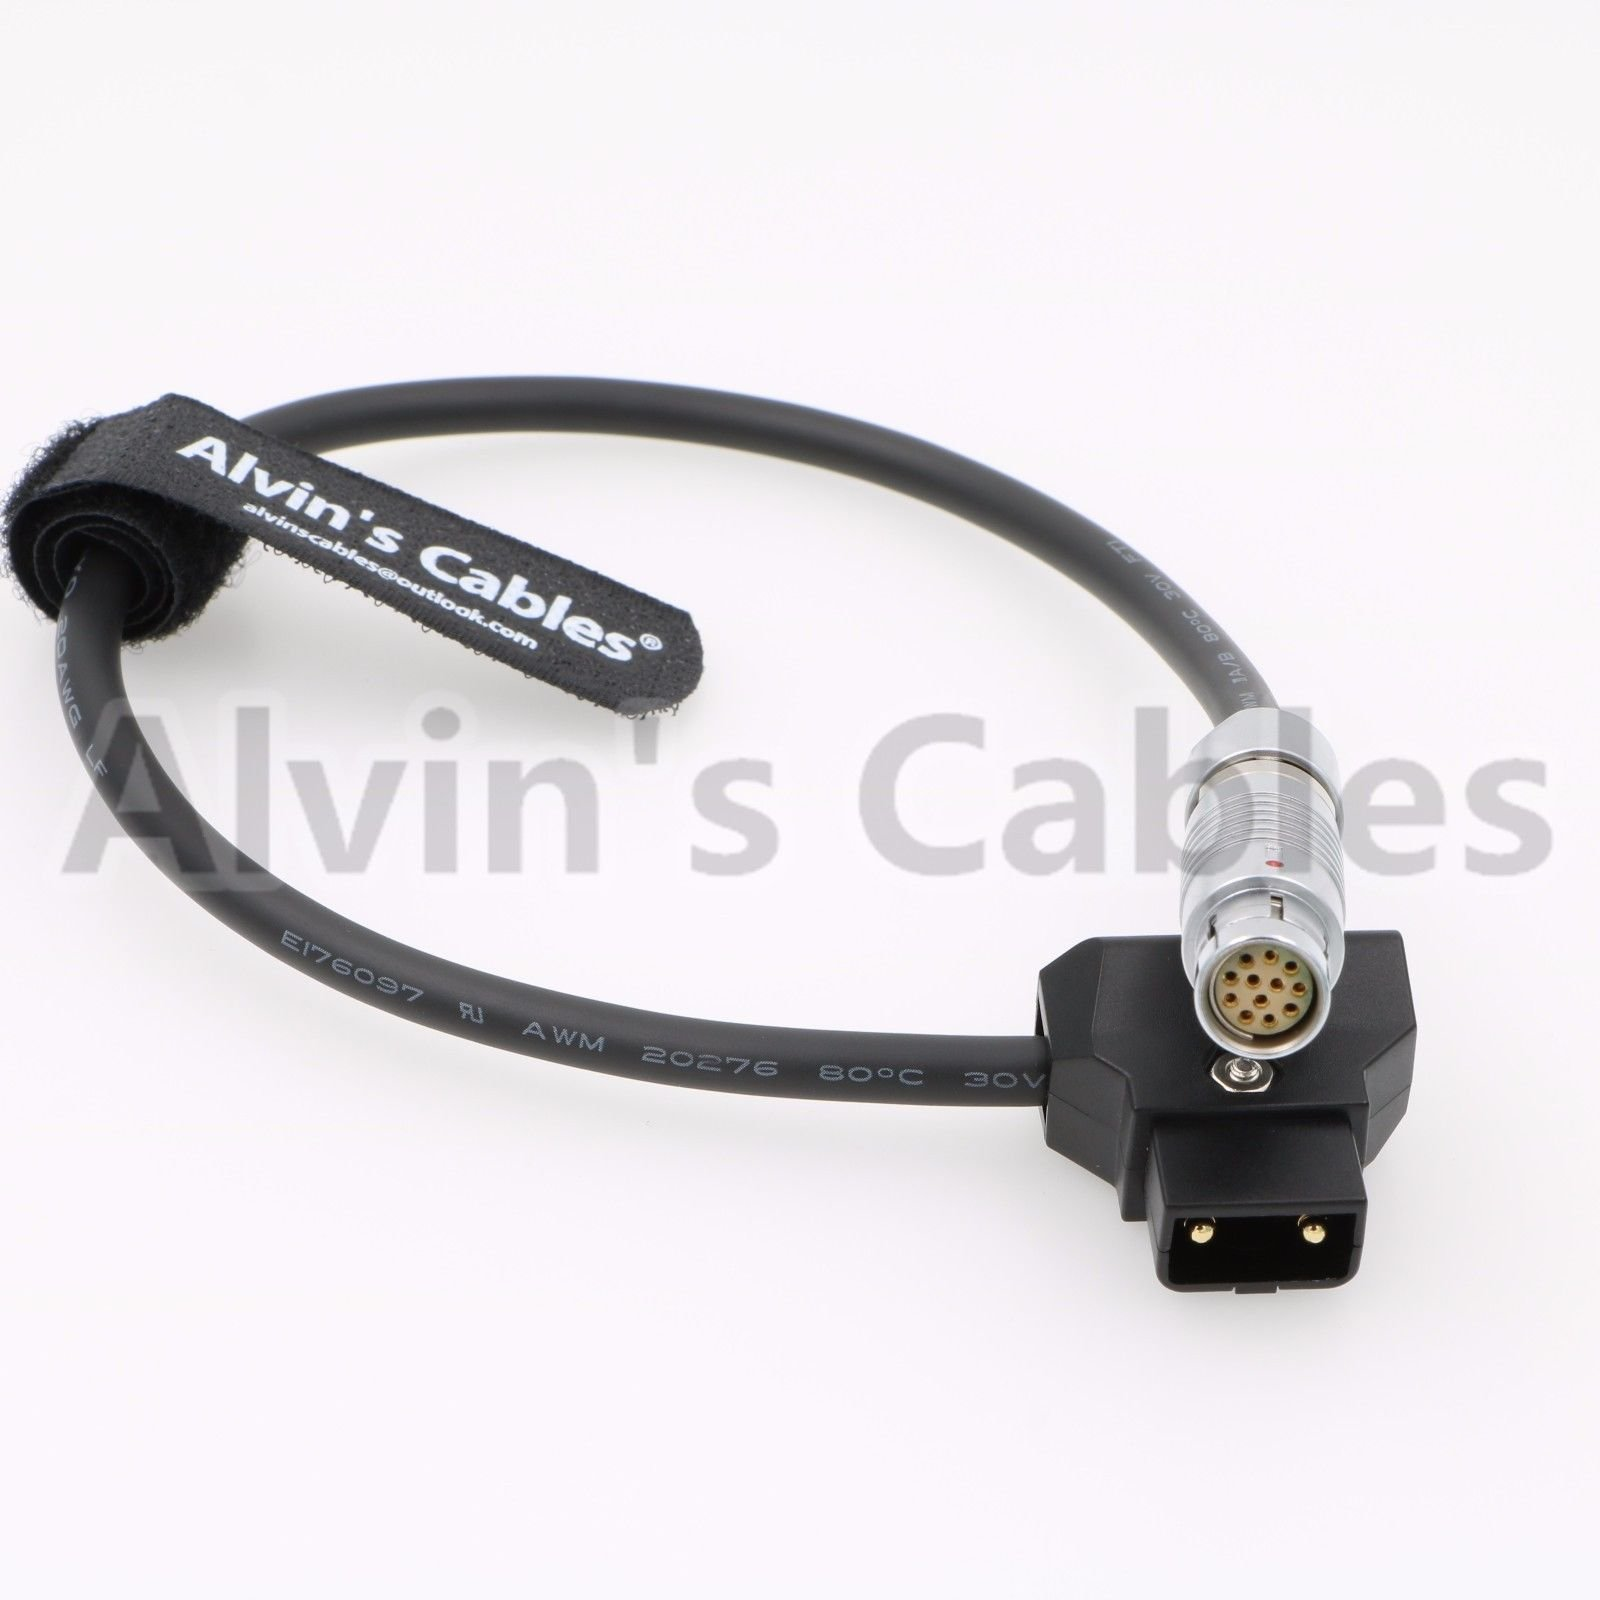 Alvin's Cables Phantom VEO Camera Power Cable Fischer 12 Pin Female to D Tap